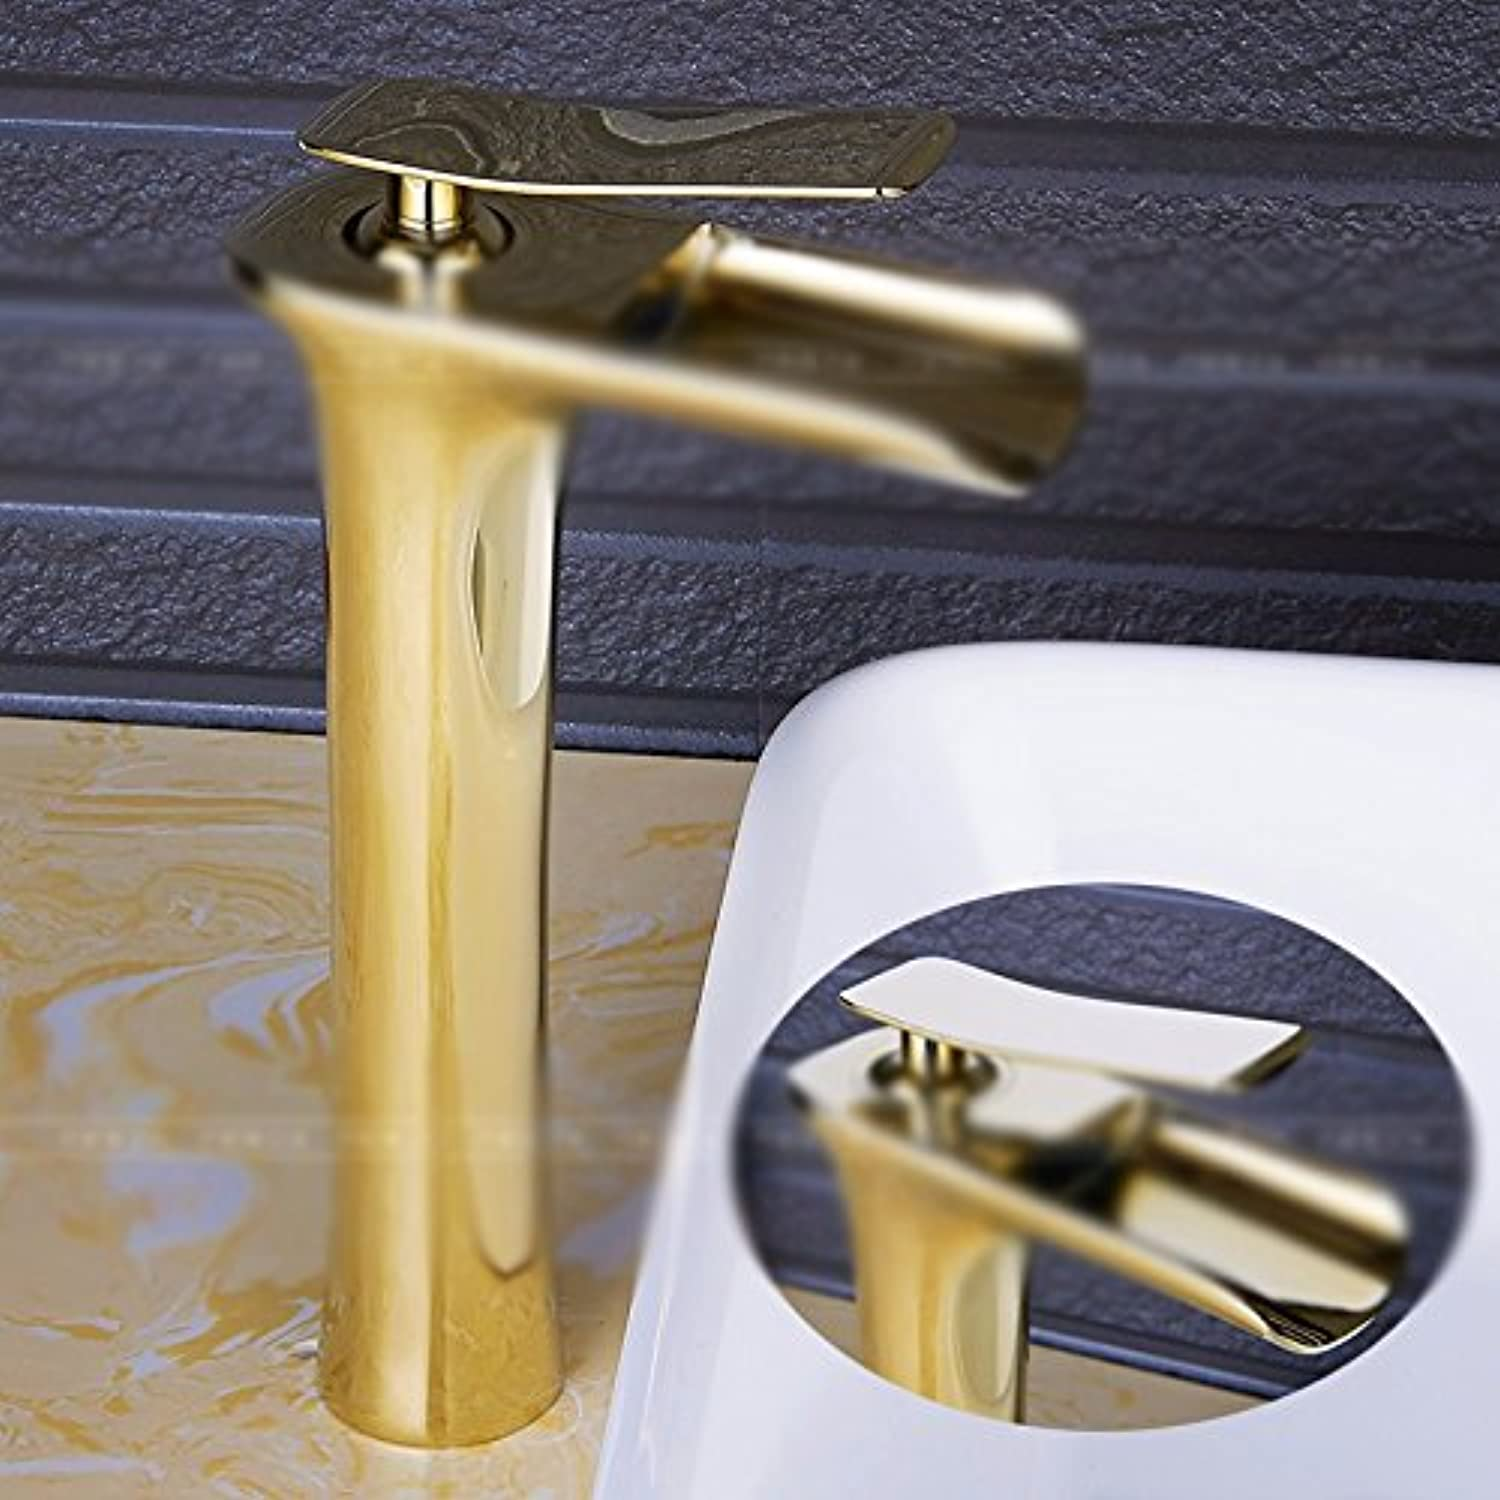 Hlluya Professional Sink Mixer Tap Kitchen Faucet The copper, waterfalls, single handle single hole, hot and cold, and the sink faucet,M